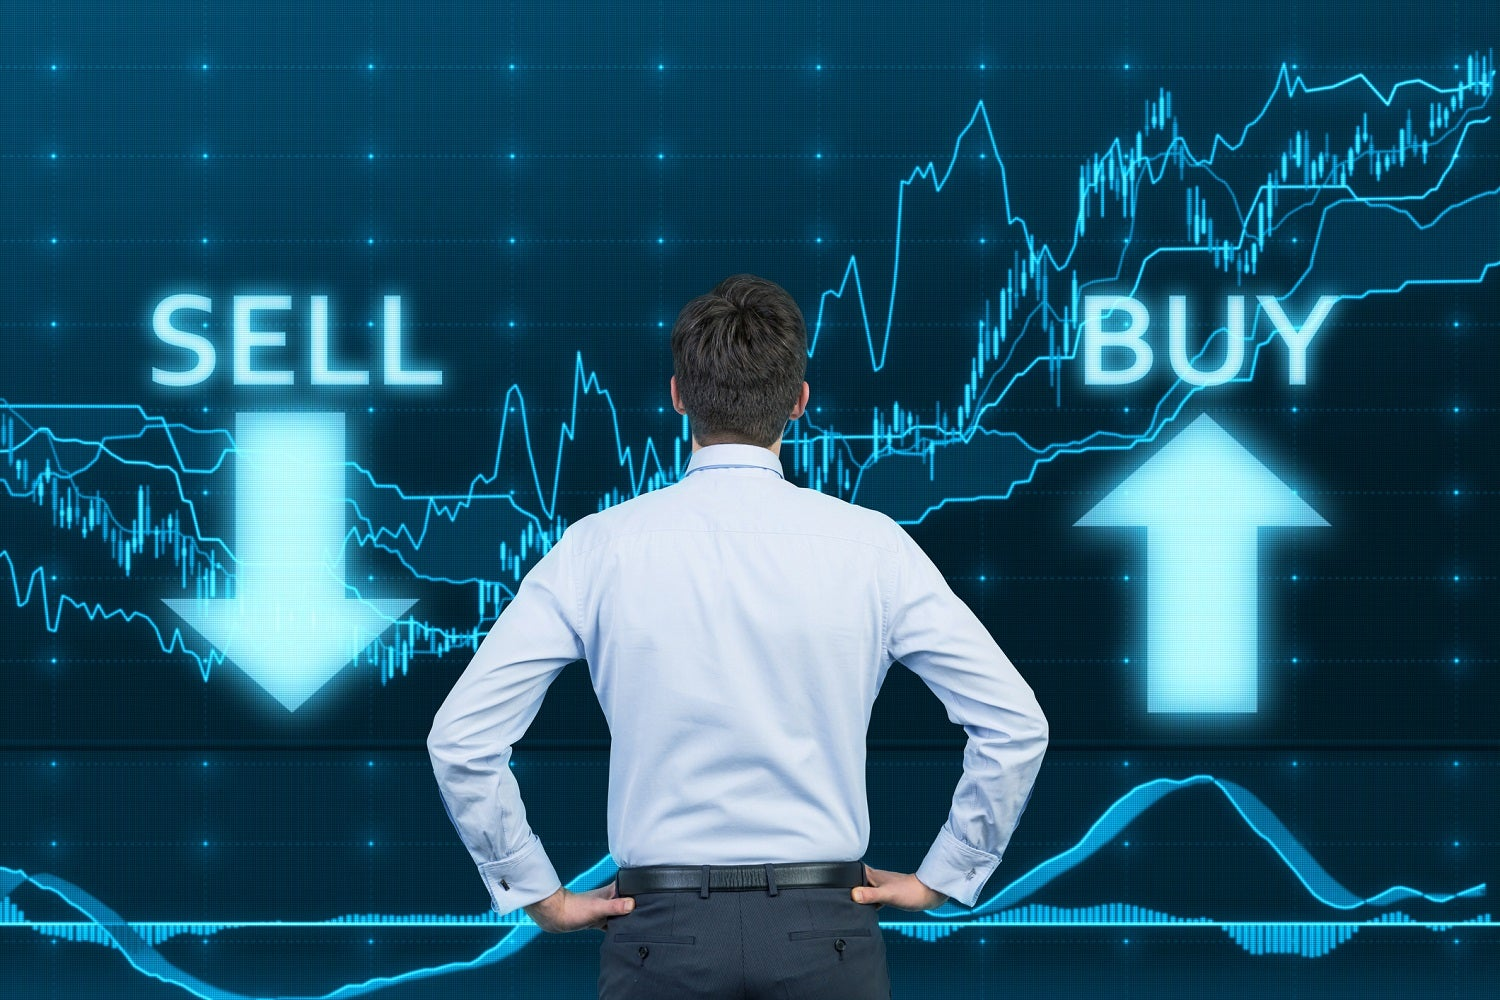 How to Decide When to Buy Stocks During a Sell-Off | The Motley Fool